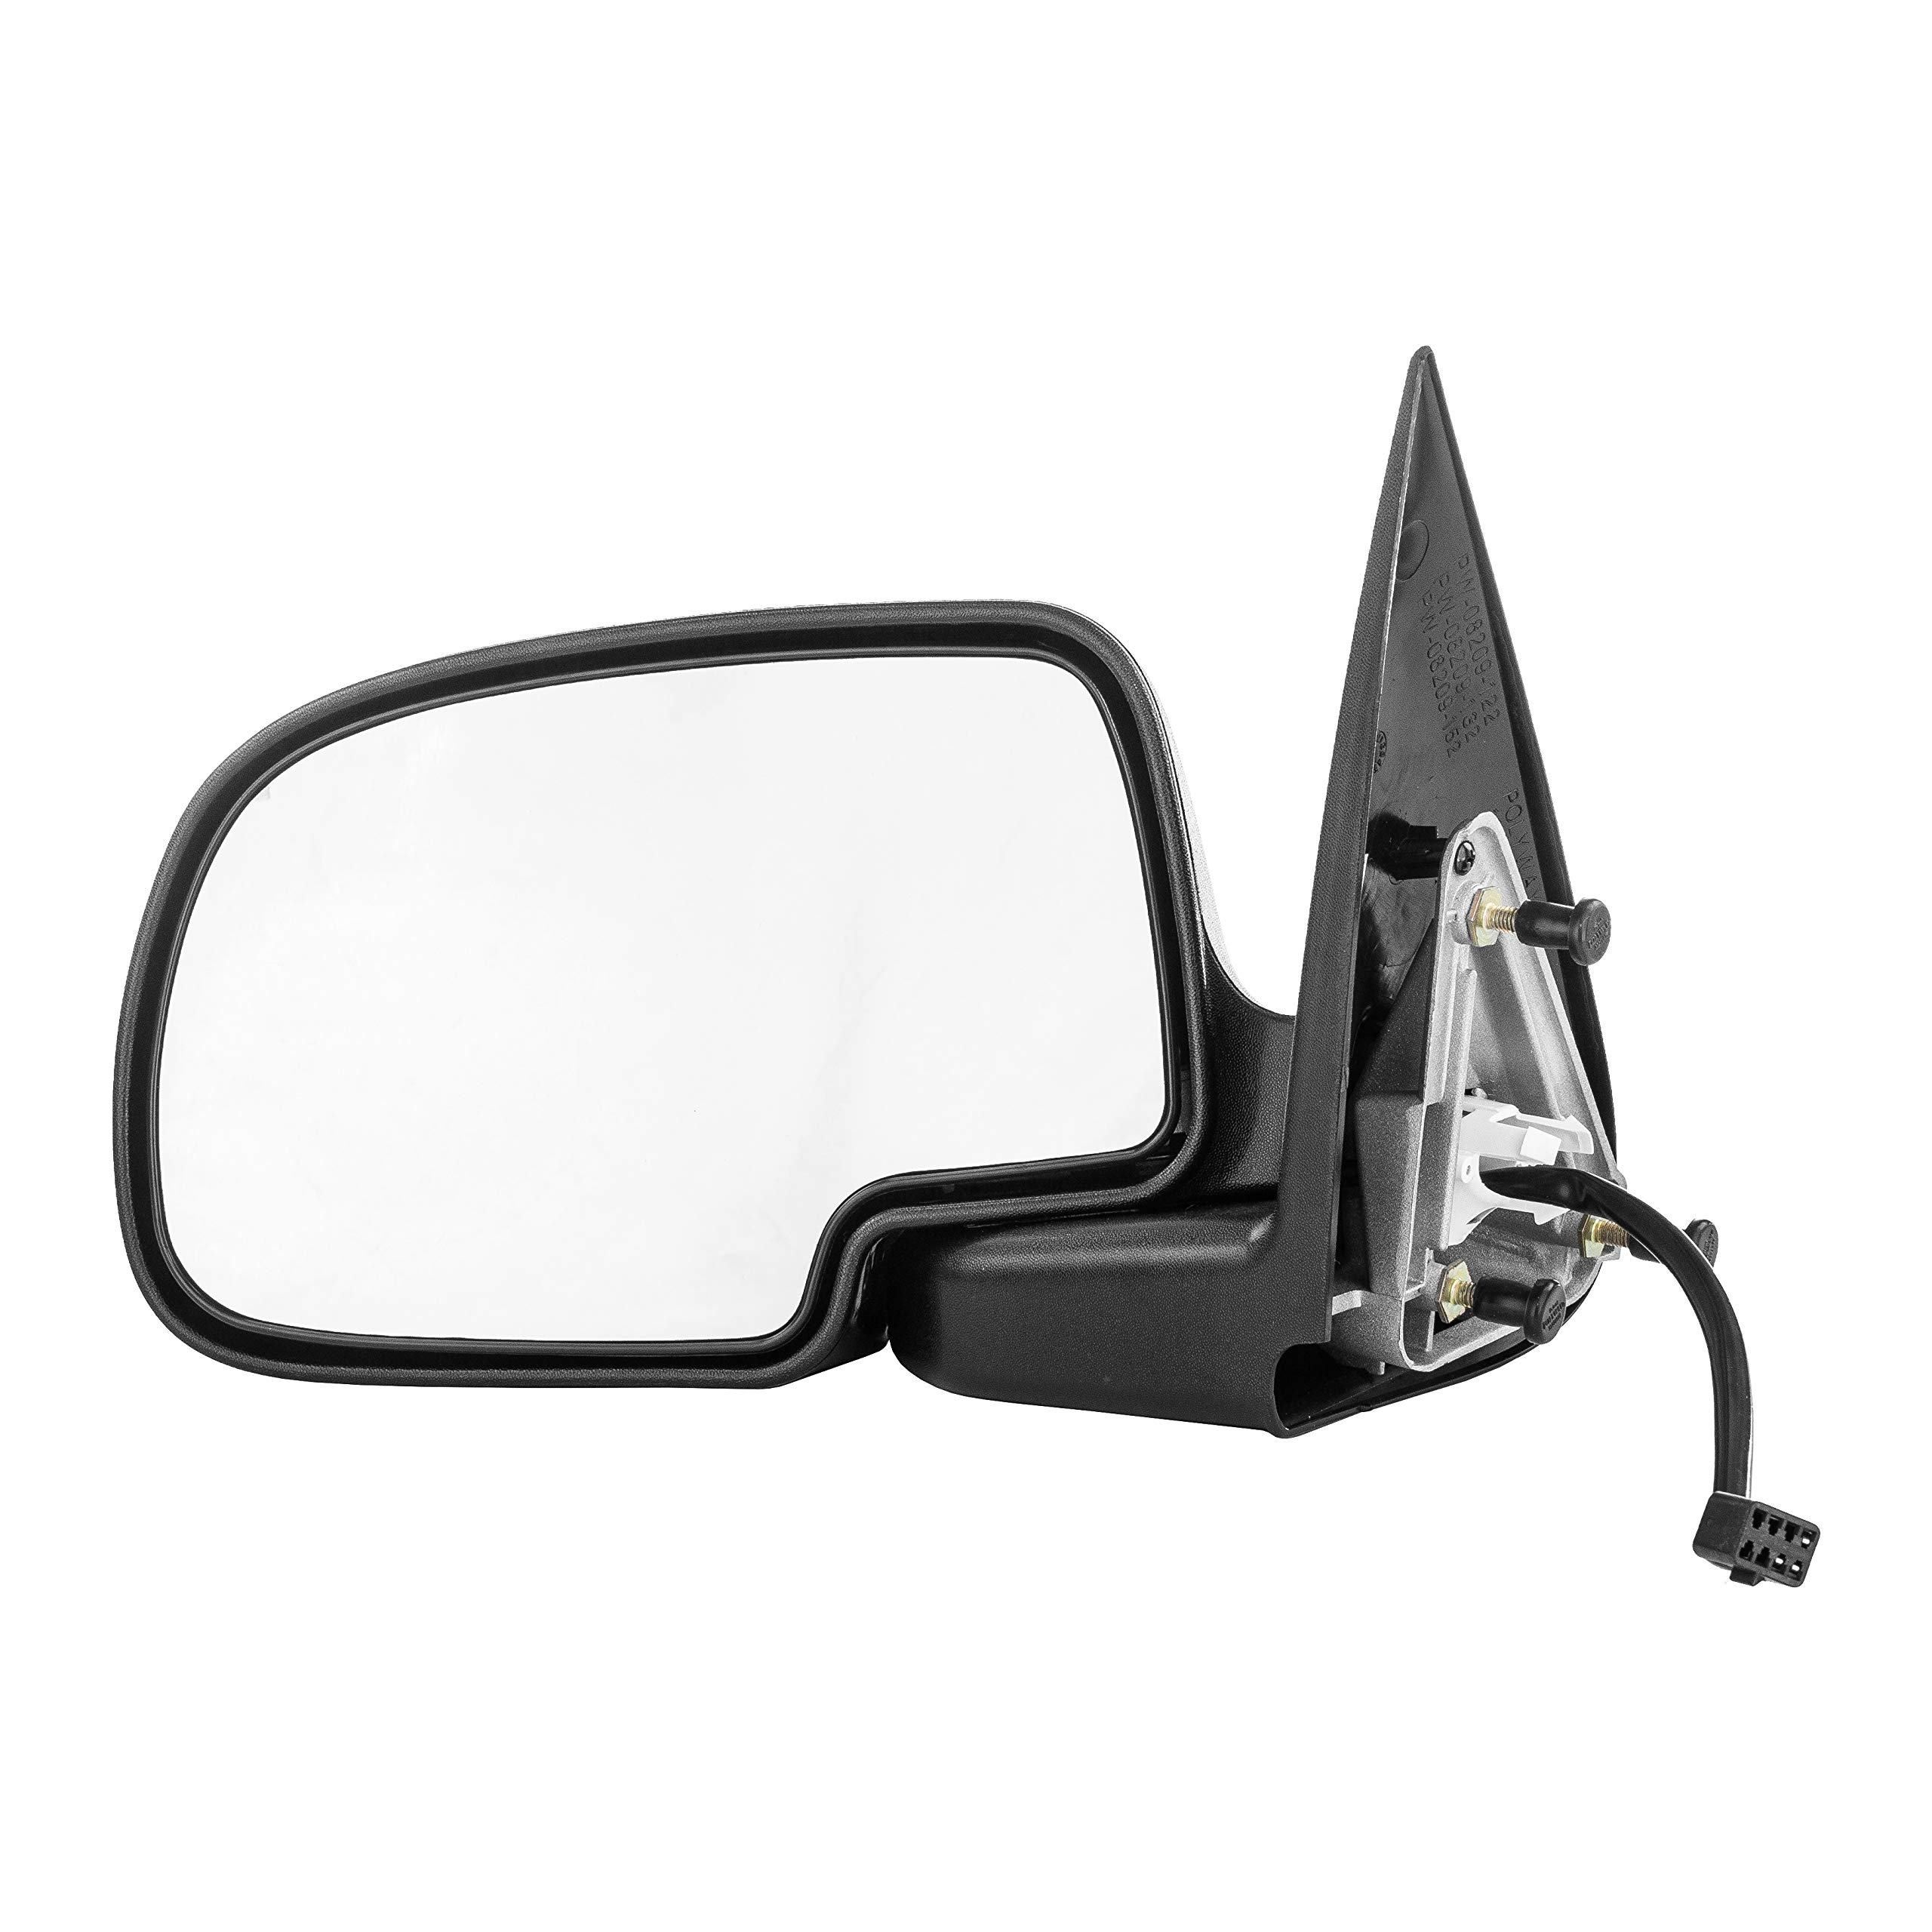 Left Driver Side Mirror for Chevy Avalanche Silverado GMC Sierra 1500 2500 (1999 2000 2001 2002) Chrome Non-Heated Folding Outside Rear View Door Mirror - GM1320174